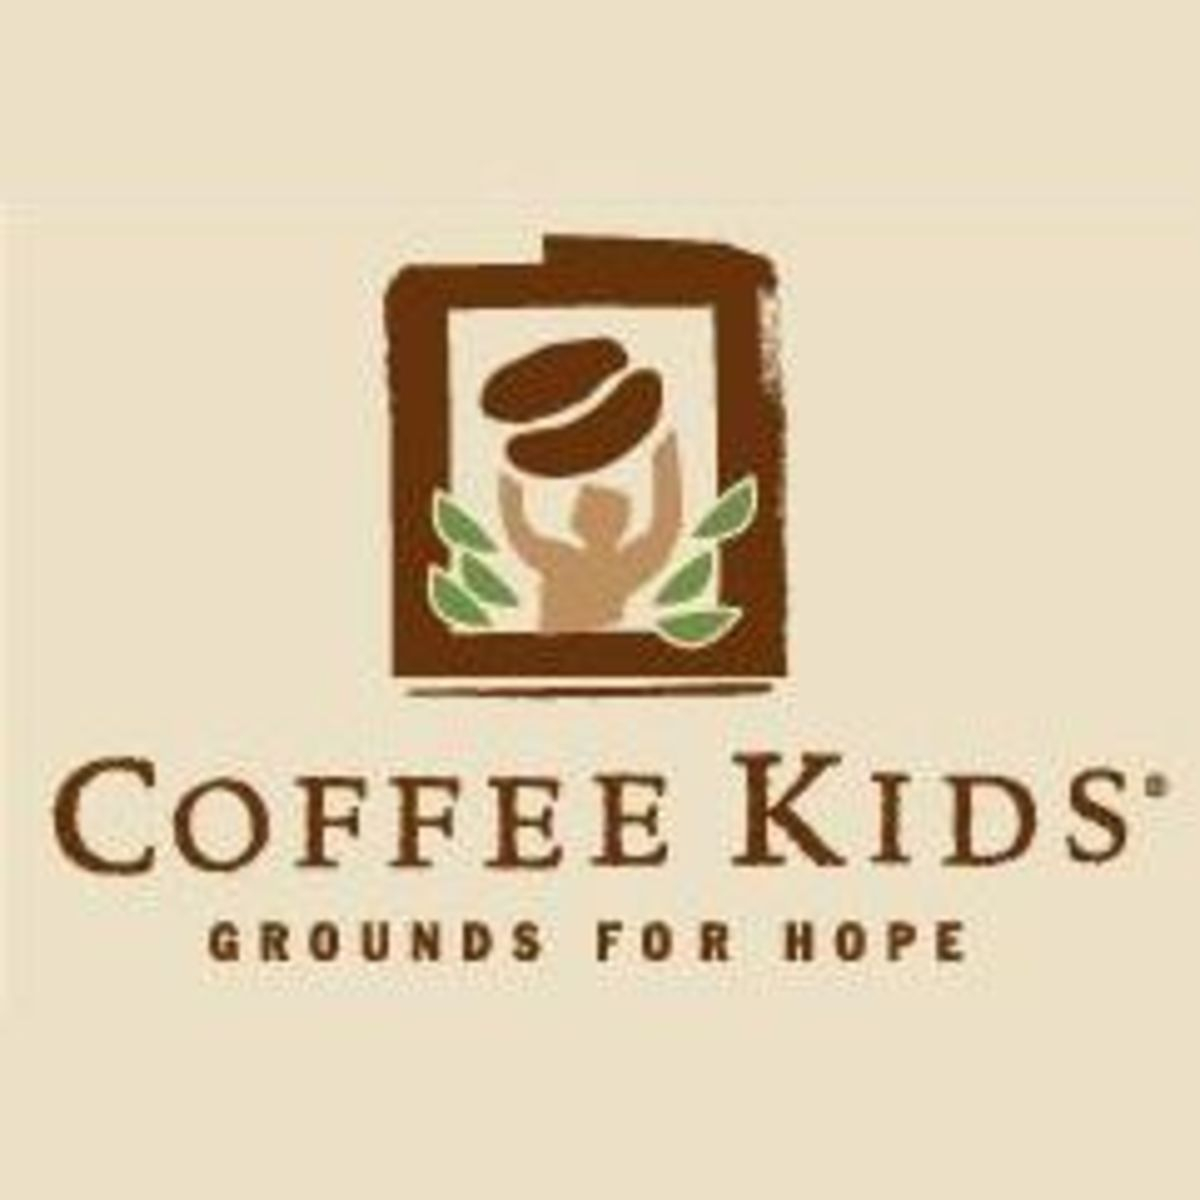 Find Out More About Coffee Kids And How You Can Help This Holiday Season.